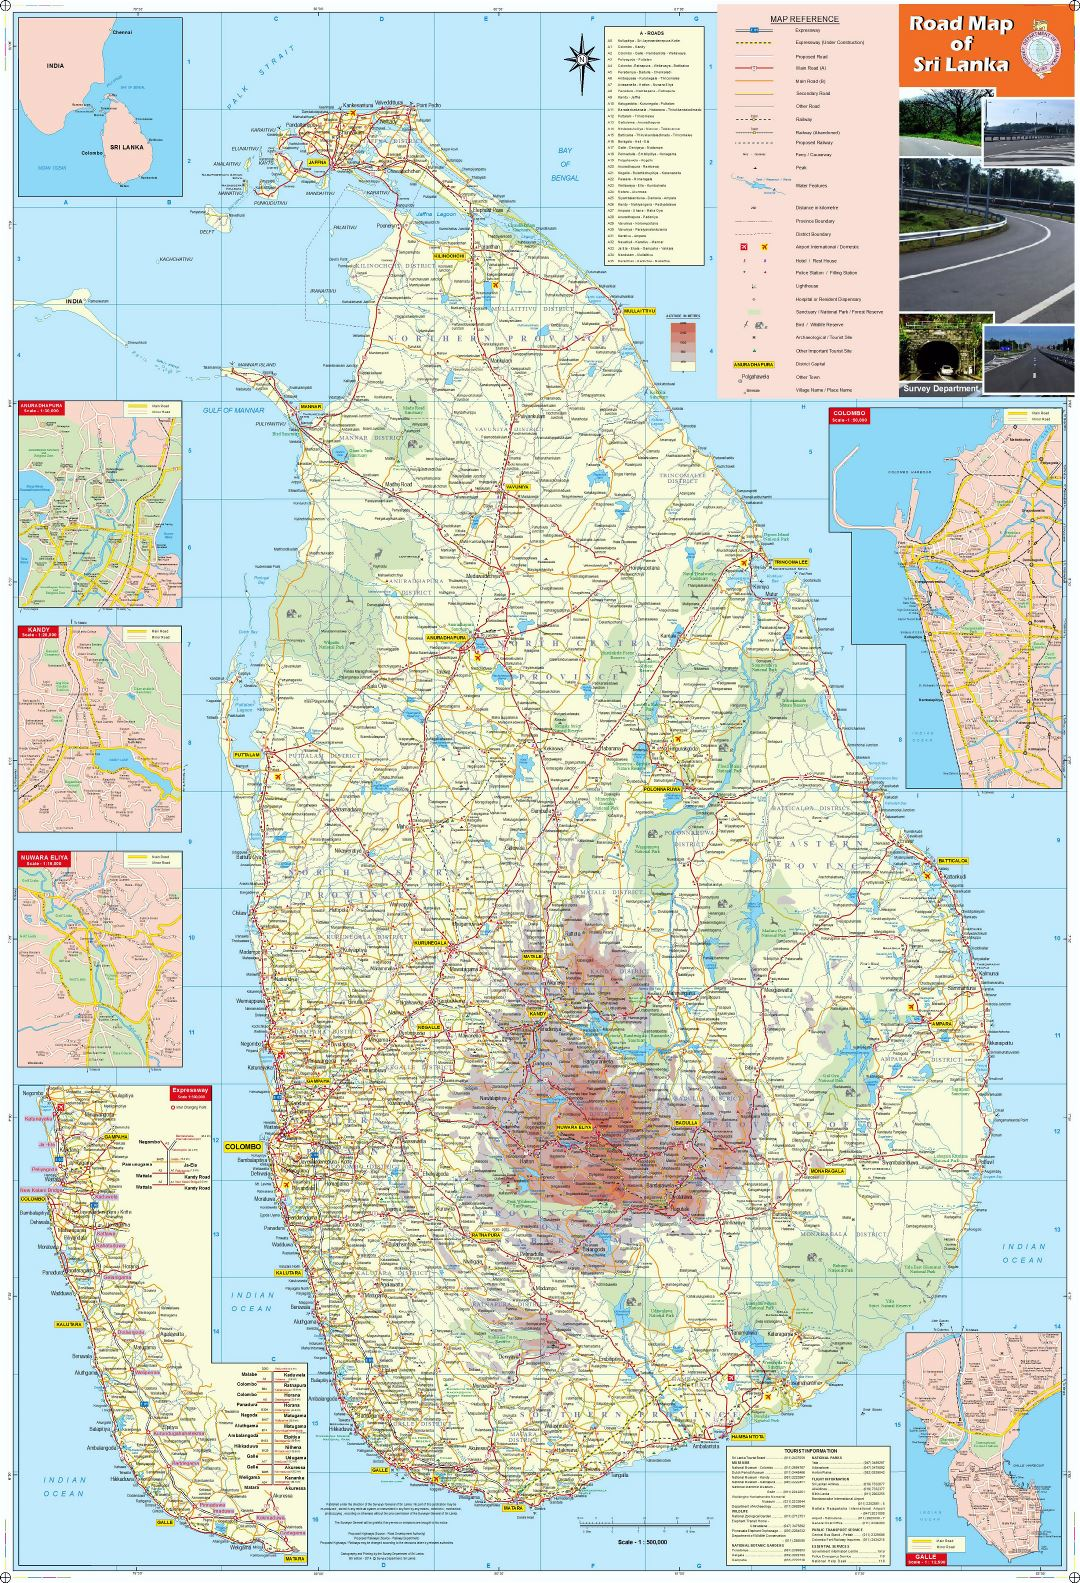 Large detailed map of Sri Lanka with all cities, roads, railroads, airpors and other marks